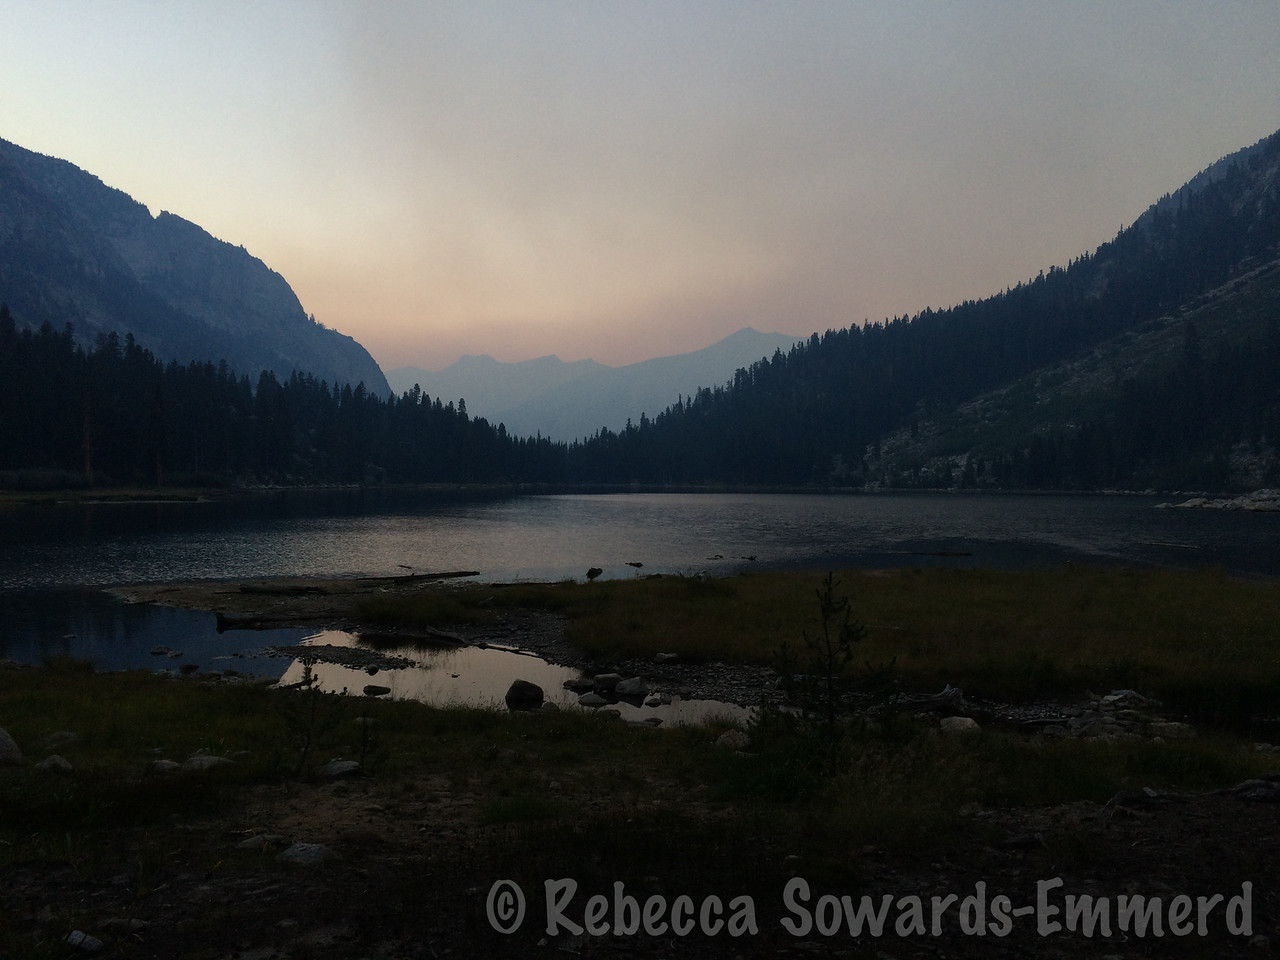 Back at camp by sunset. And the sudden appearance of smoke is not a good sign.